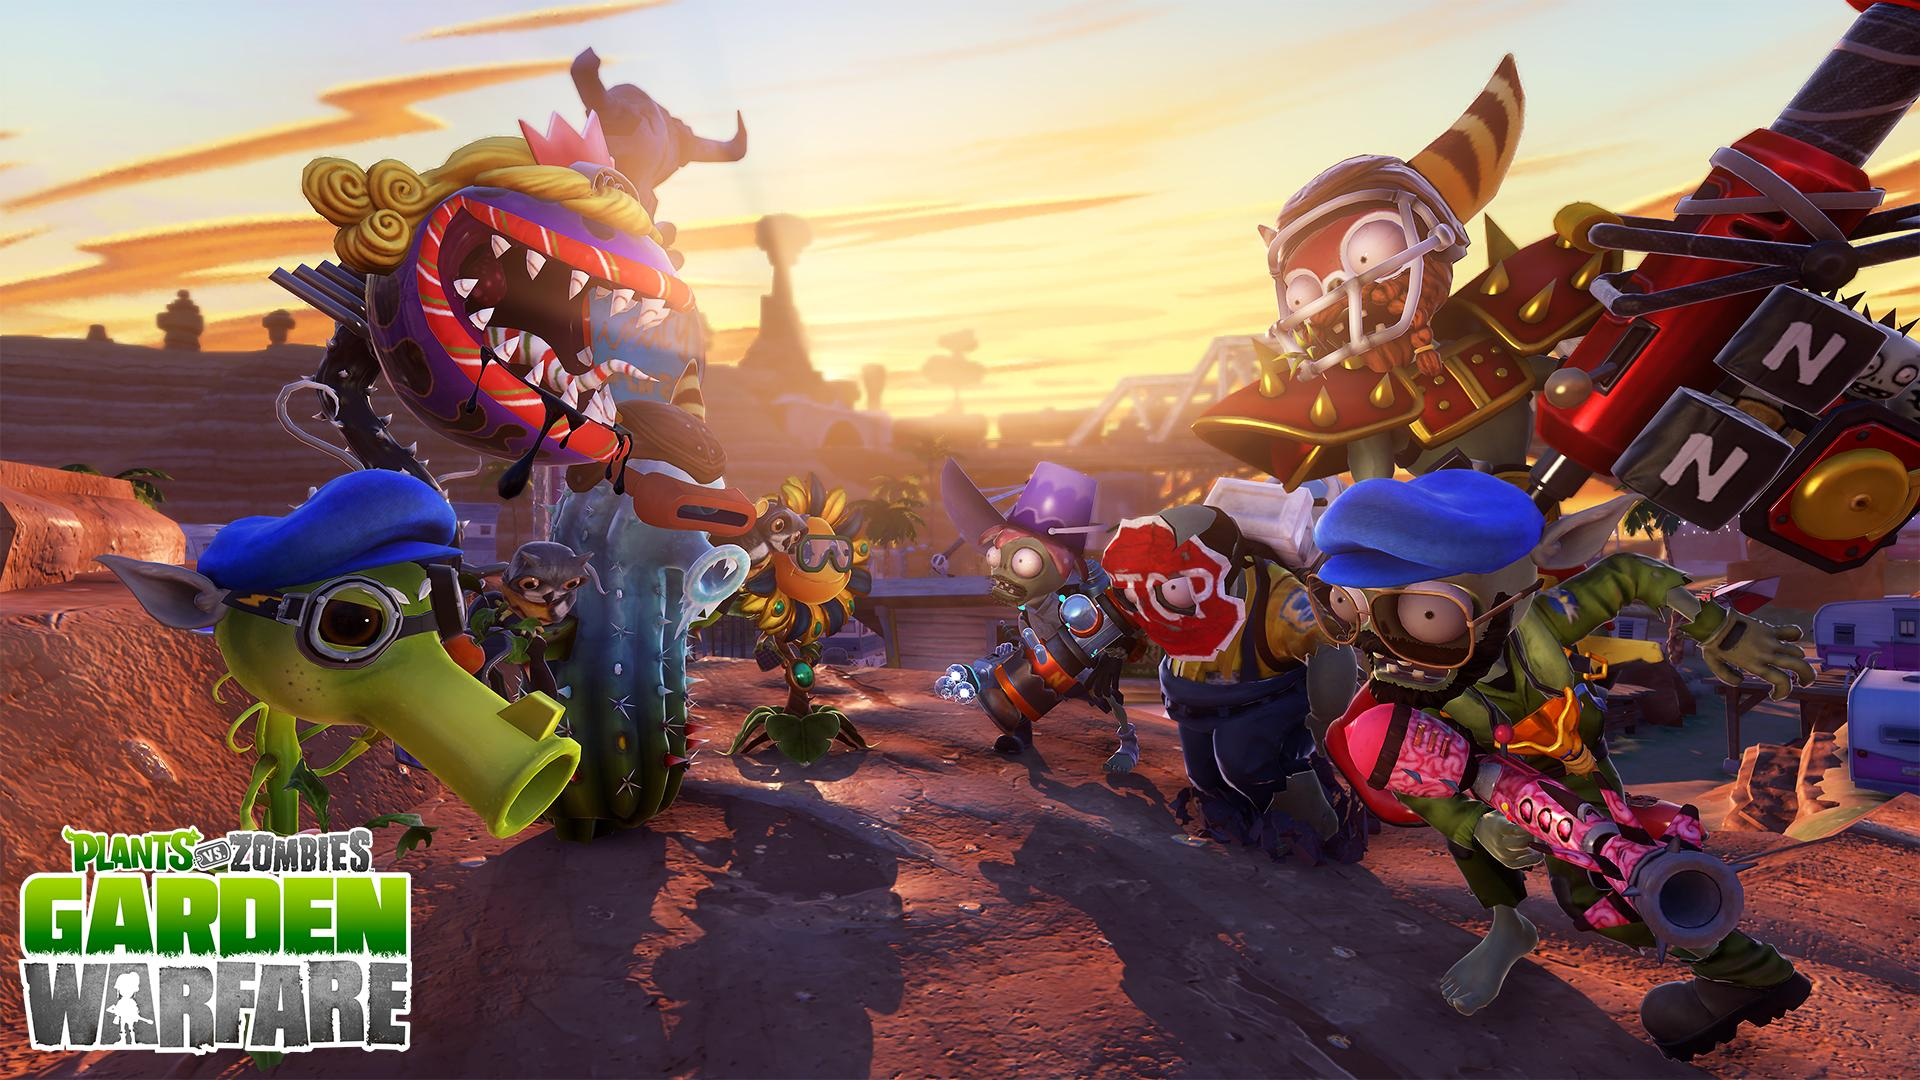 plants vs zombies garden warfare wallpaper hd 48566 1920x1080 px